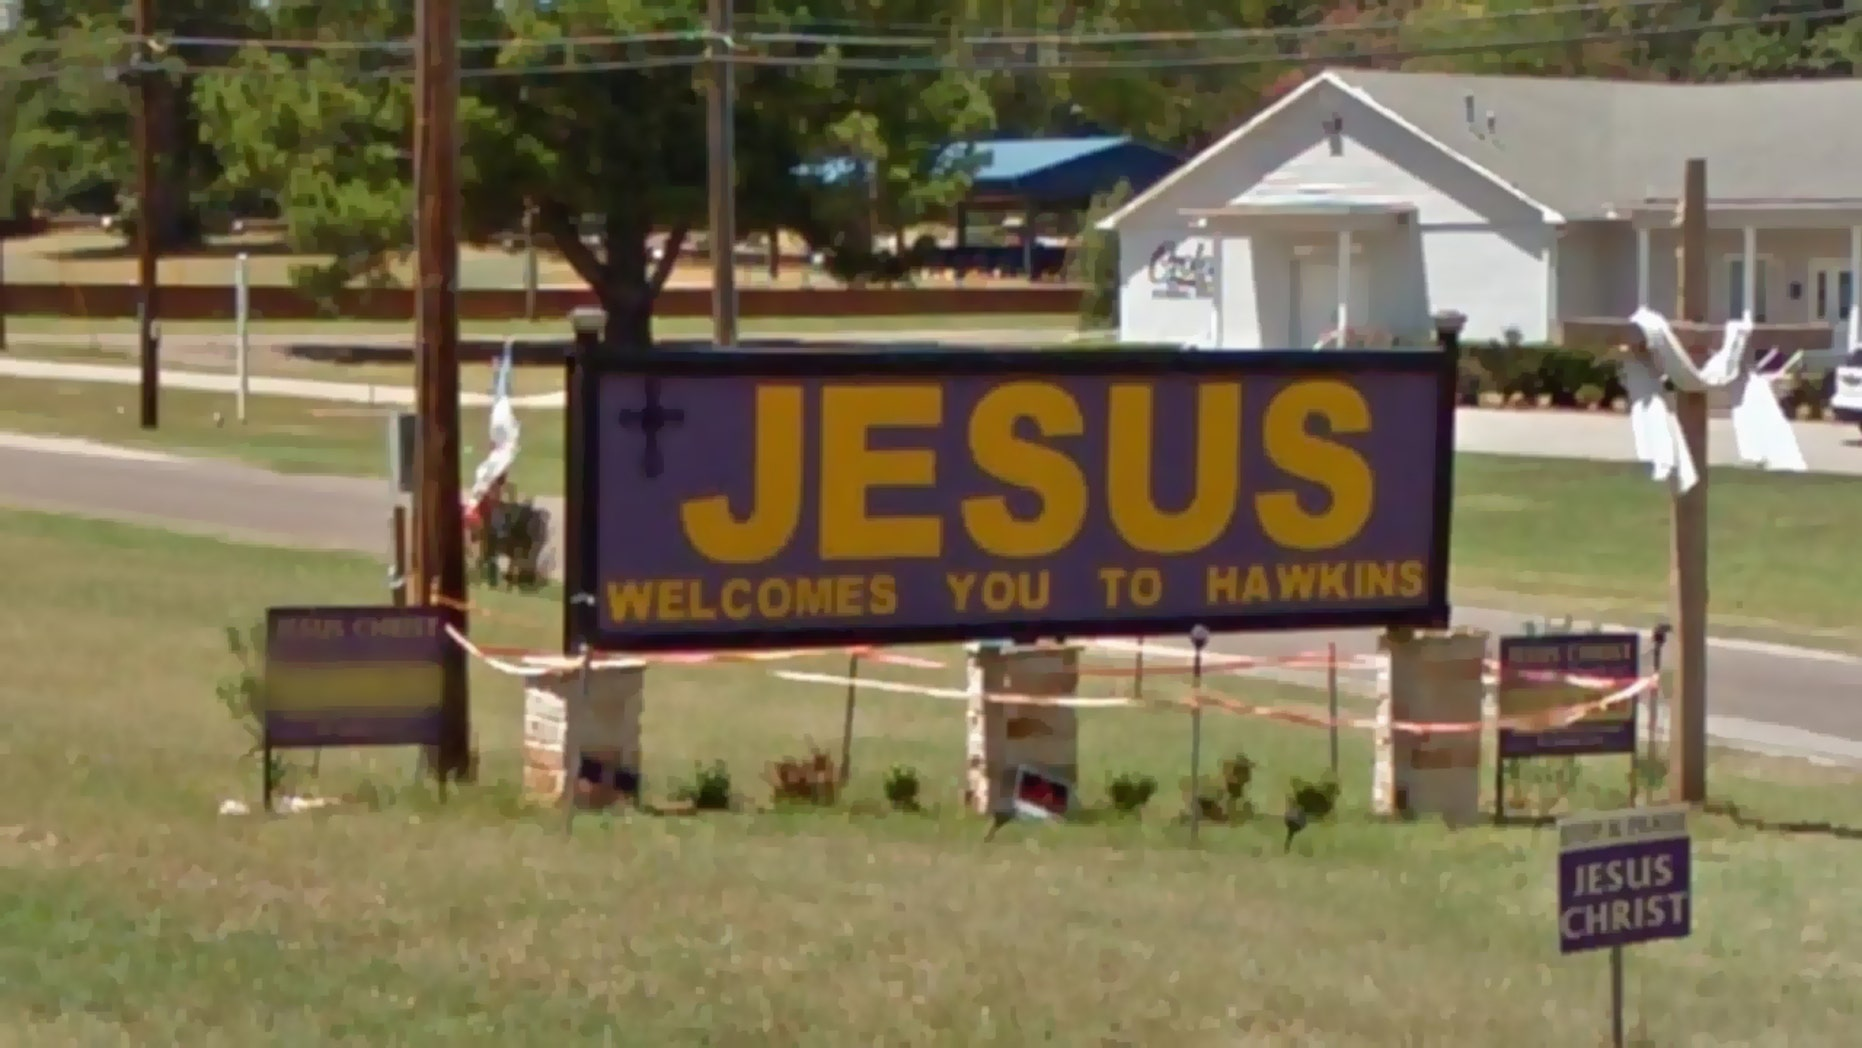 Westlake Legal Group JesusWelcomesYoutoHawkins Texas city takes down church's 'Jesus Welcomes You to Hawkins' sign overnight fox-news/us/us-regions/southwest/texas fox-news/us/religion/christianity fox-news/faith-values fox news fnc/us fnc Caleb Parke article 60d988bd-d1fe-5595-99b6-119b4fb1120e